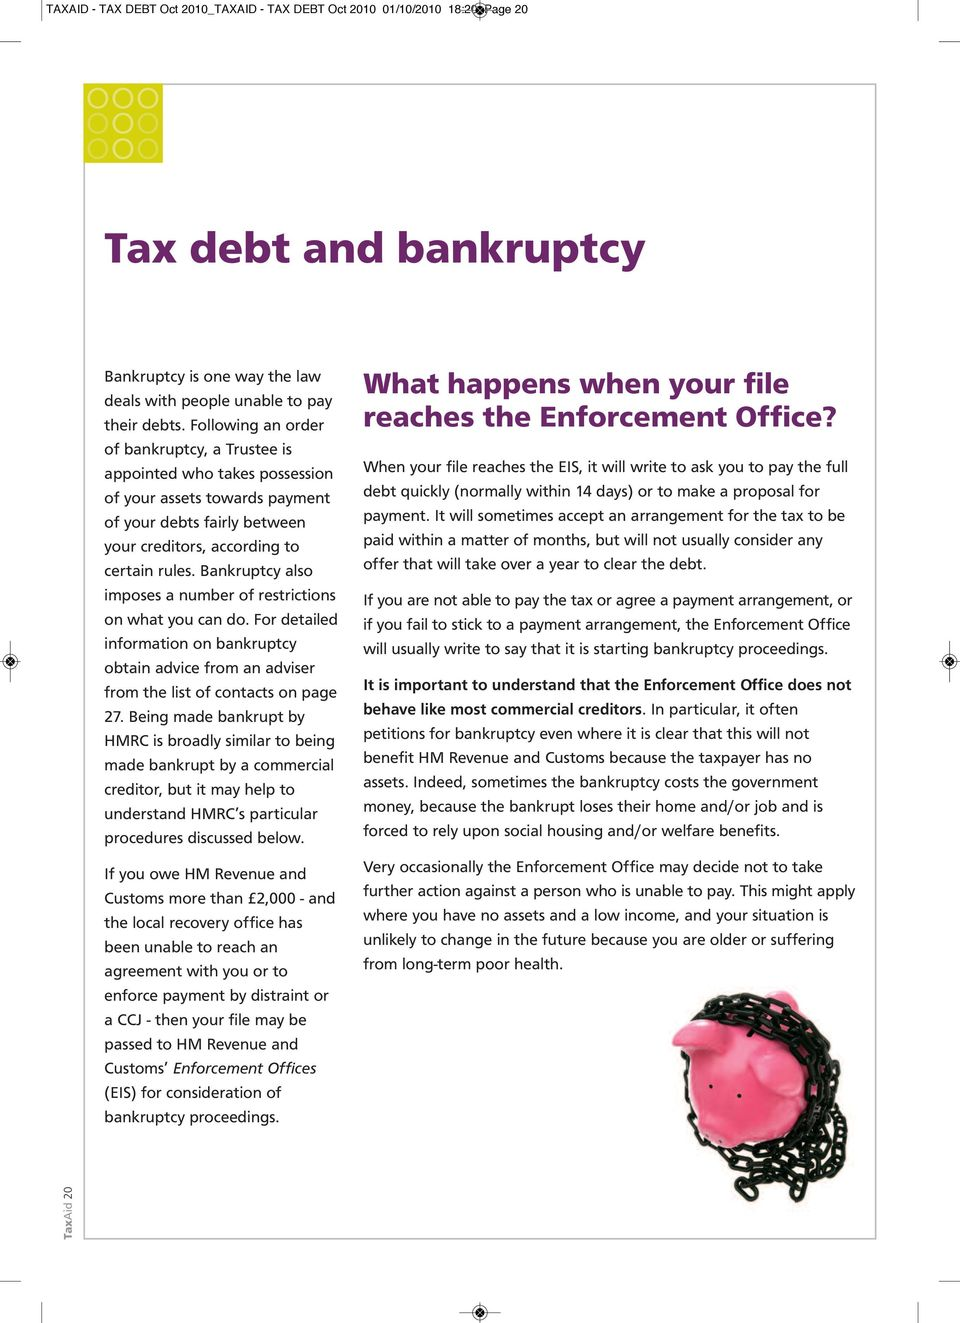 Bankruptcy also imposes a number of restrictions on what you can do. For detailed information on bankruptcy obtain advice from an adviser from the list of contacts on page 27.